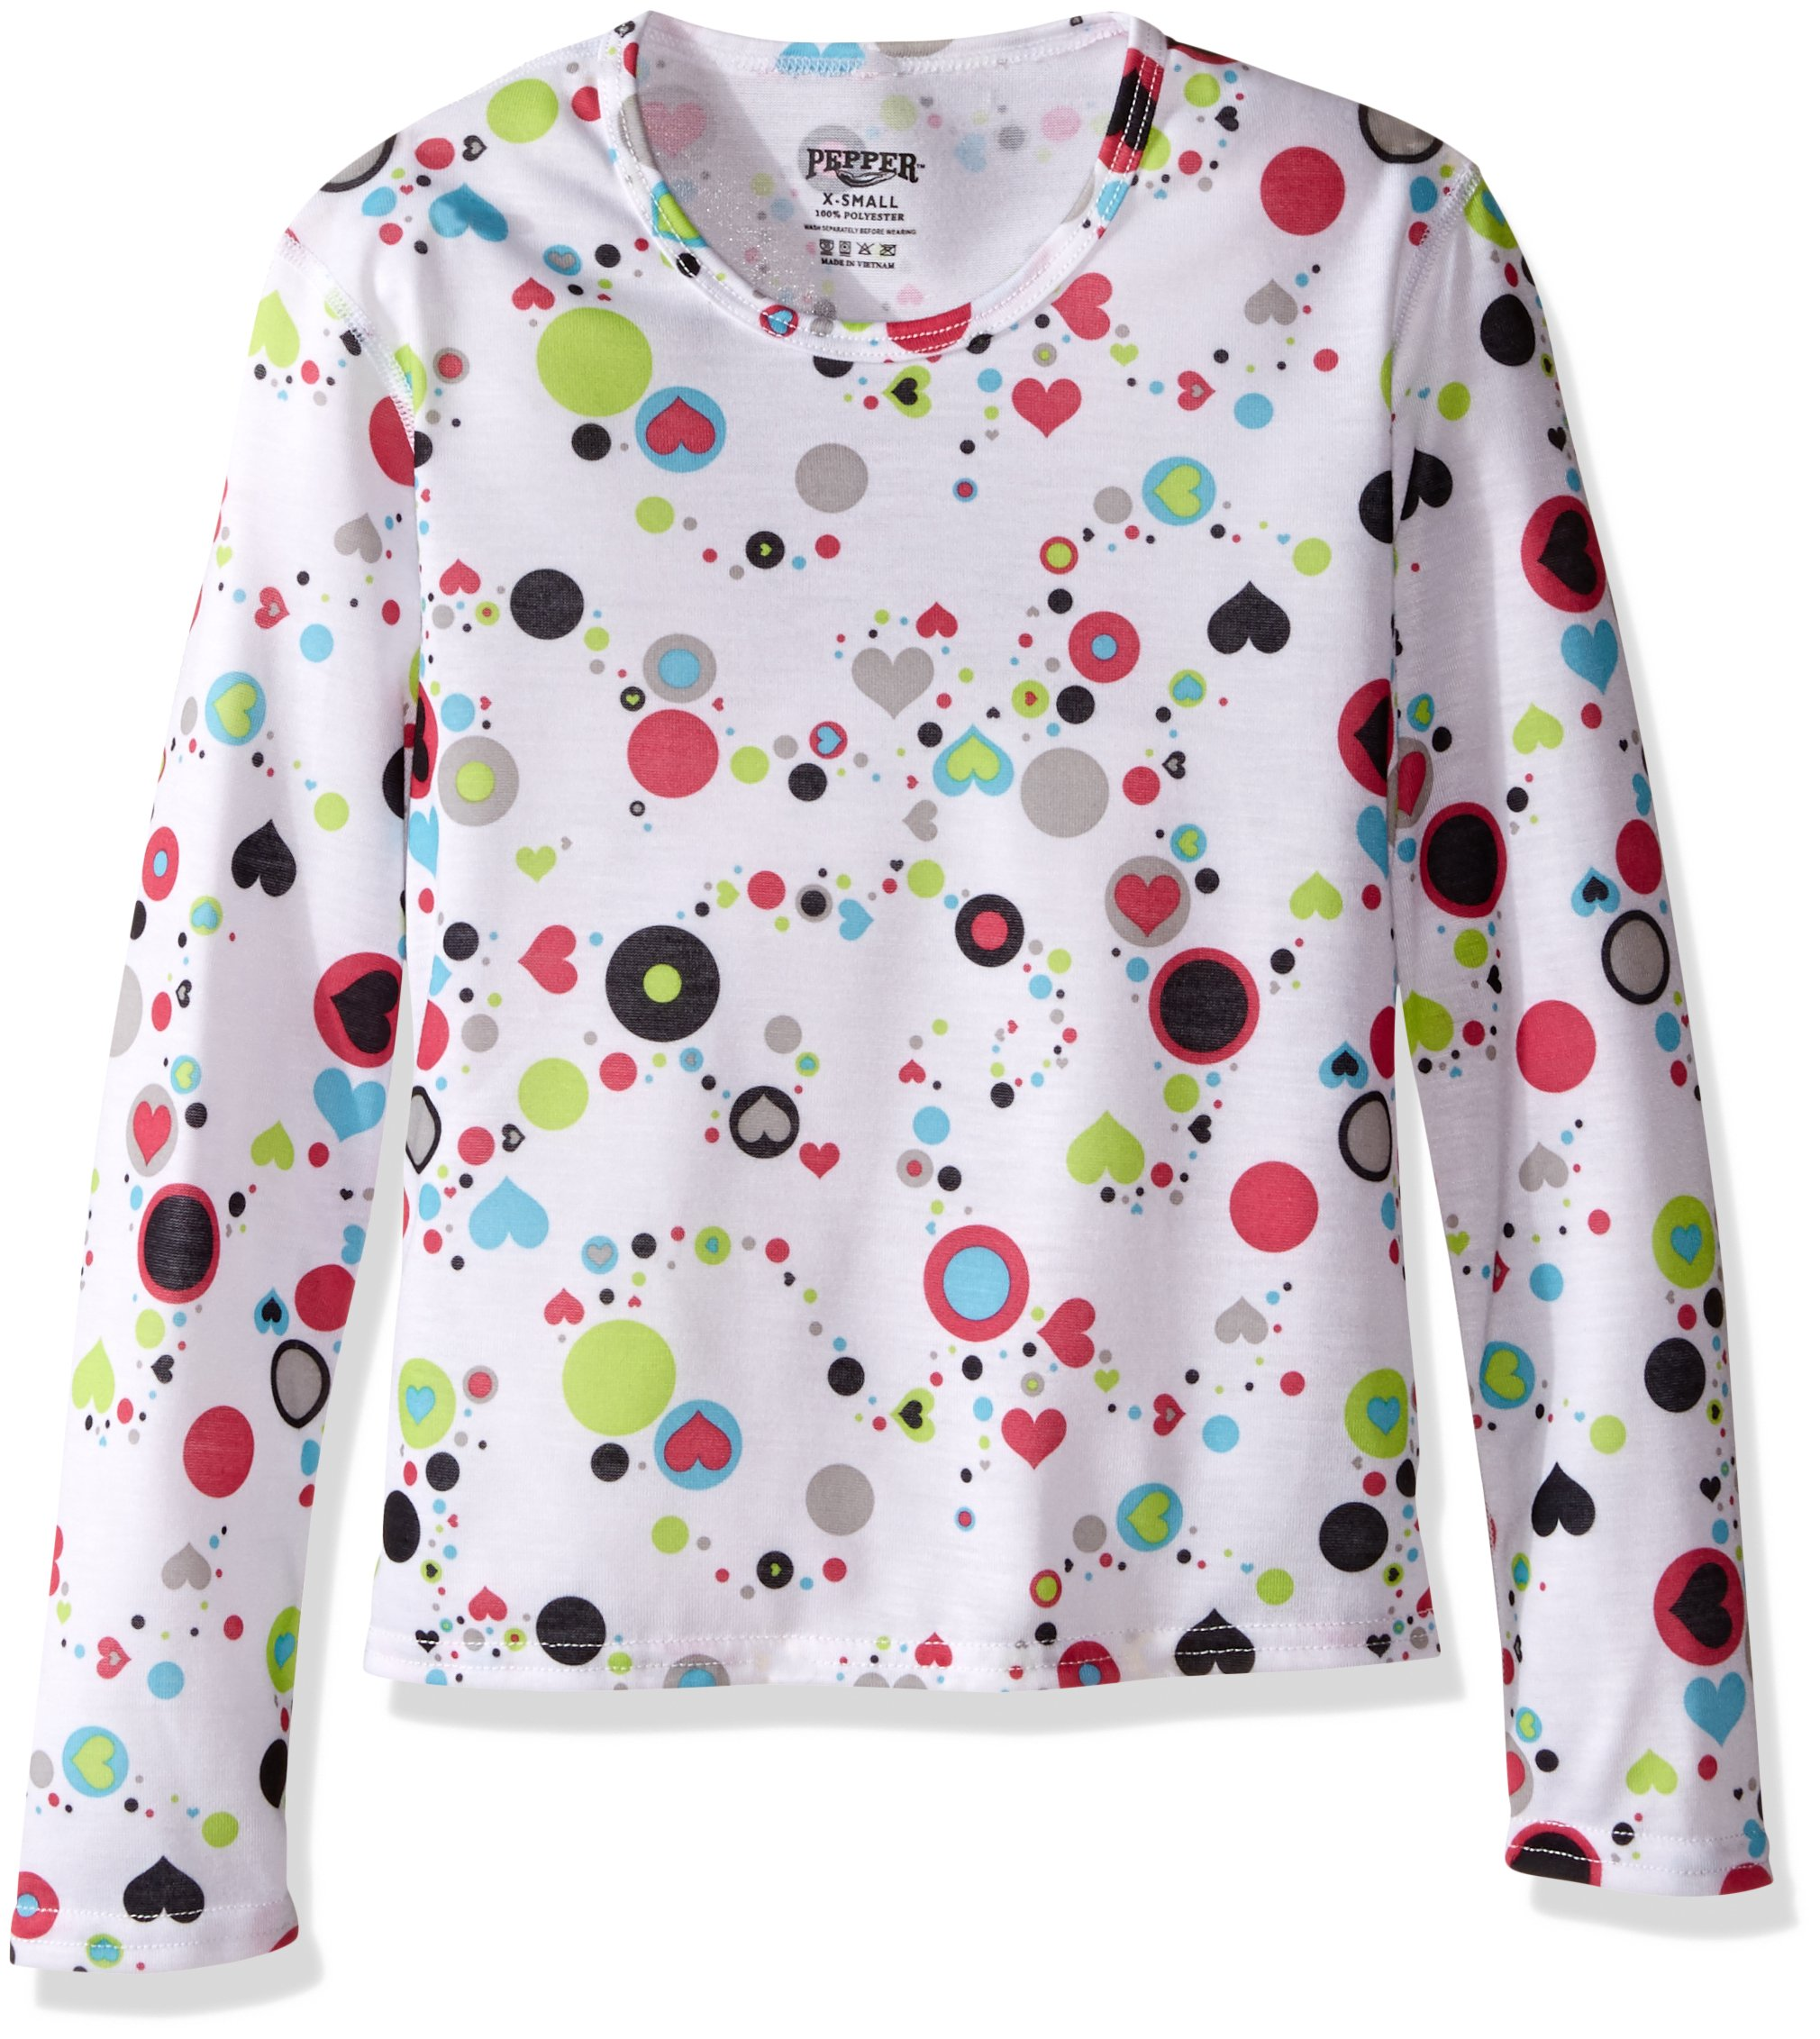 Hot Chillys Youth Pepper Skins Print Crewneck, Dots & Hearts-White, Small by Hot Chillys